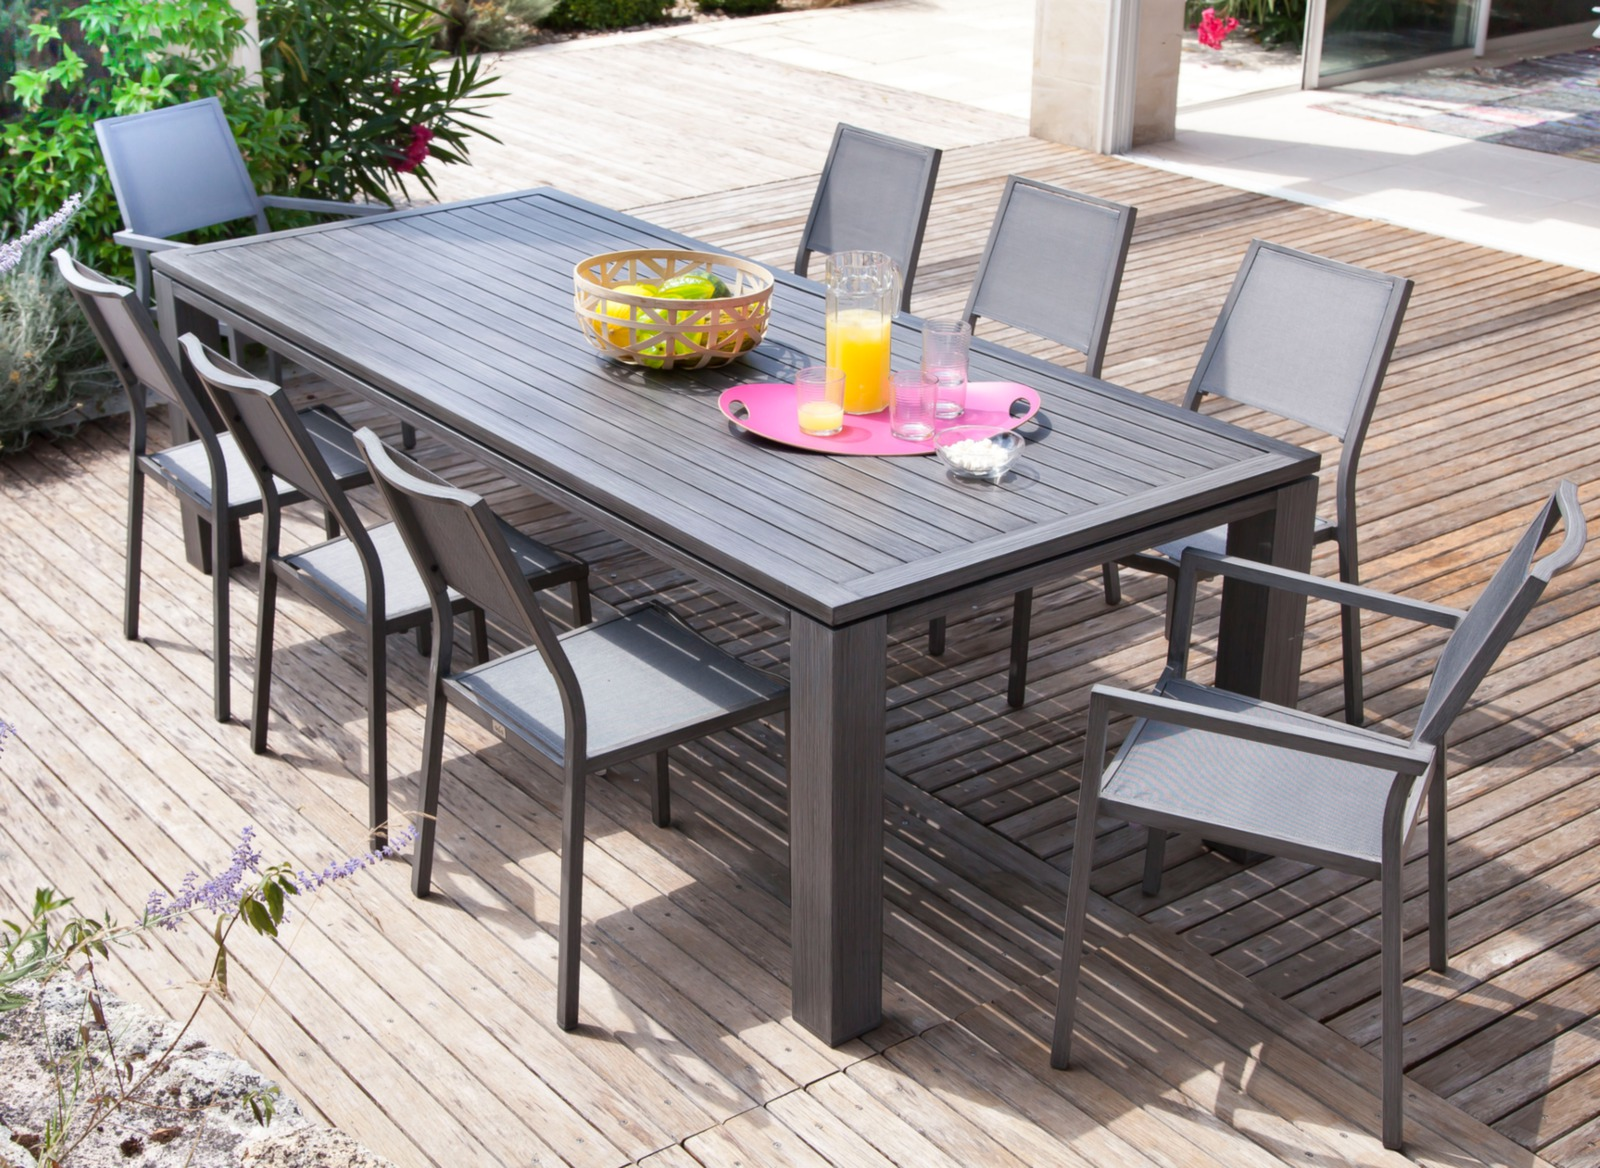 Salon de jardin avec grande table promotion proloisirs - Ensemble table chaise jardin ...